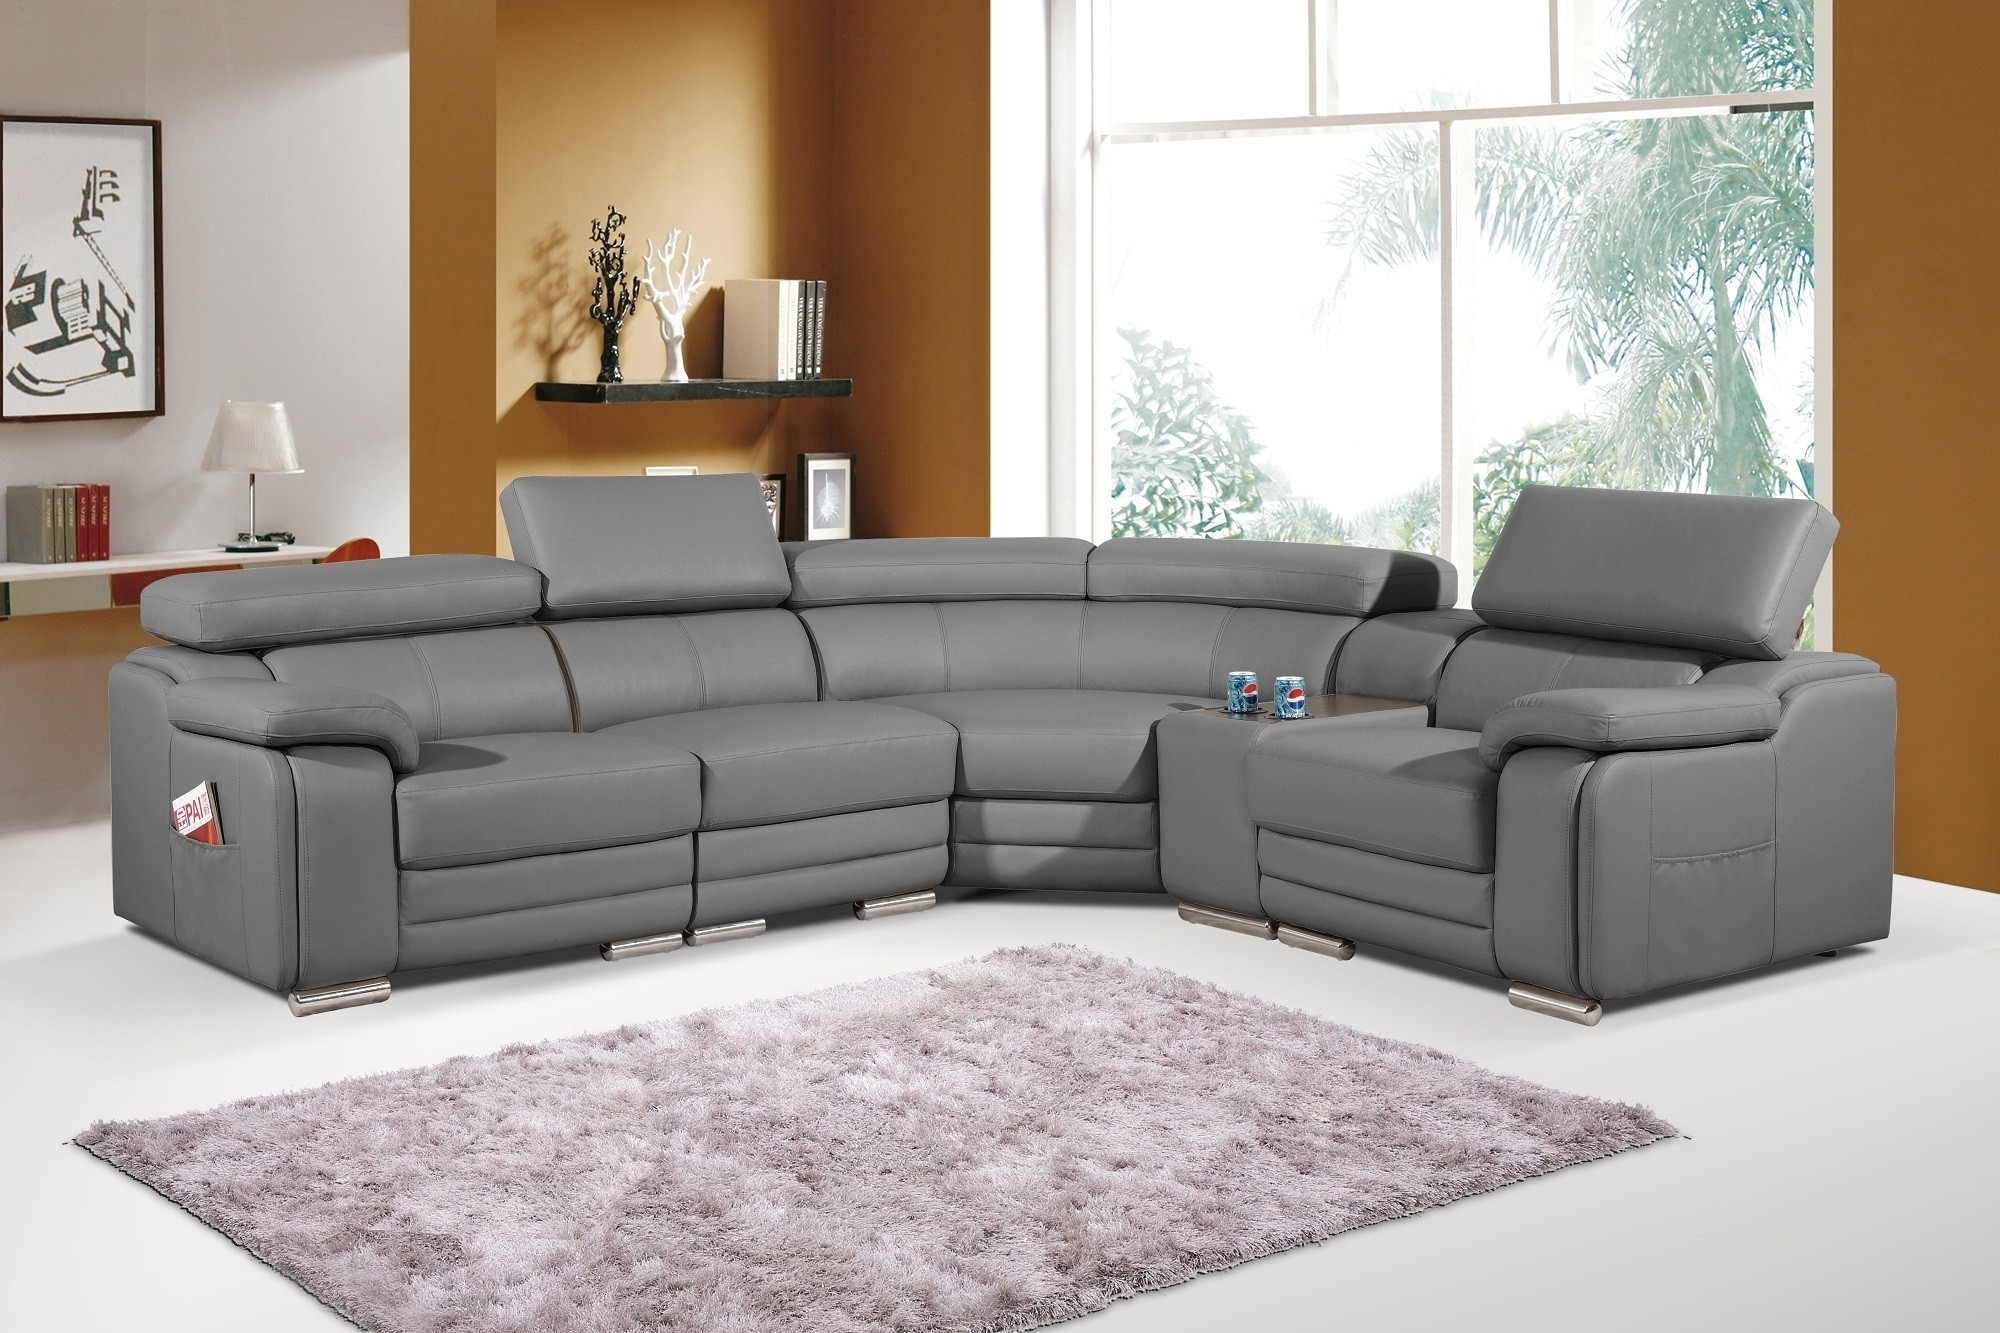 Unique Leather Corner Sofas • Leather Sofa Pertaining To Fashionable Leather Corner Sofas (Gallery 2 of 20)